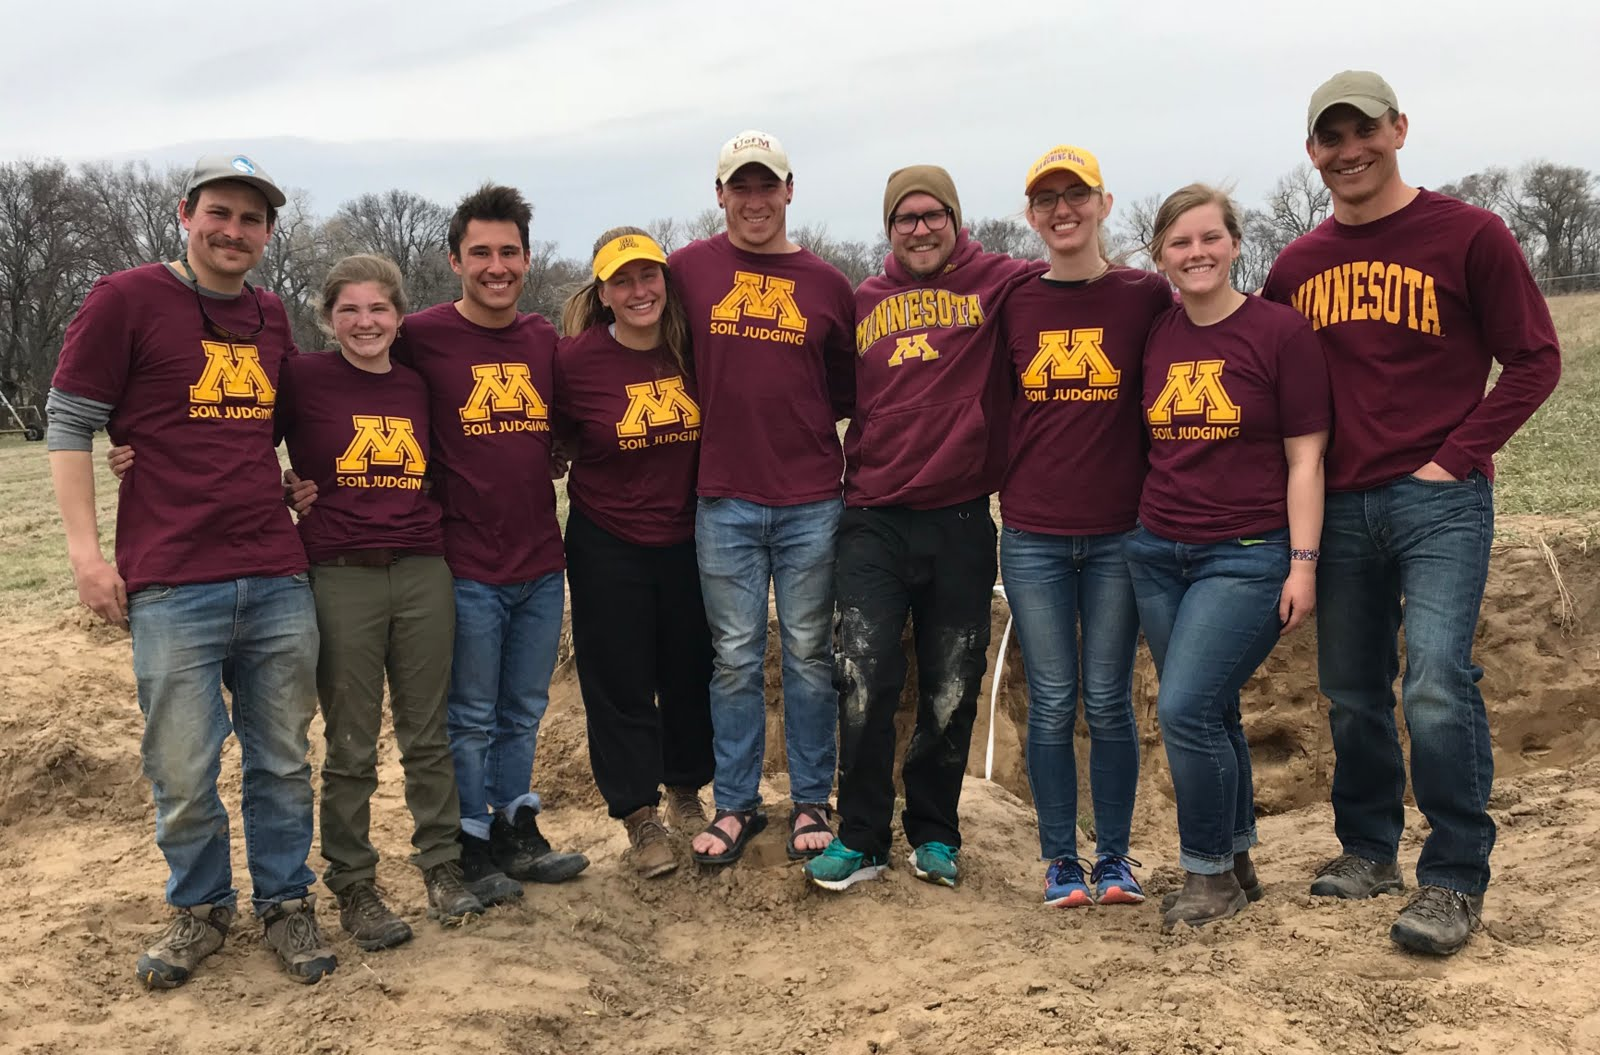 2018 University of Minnesota NACTA Soil Judging Team